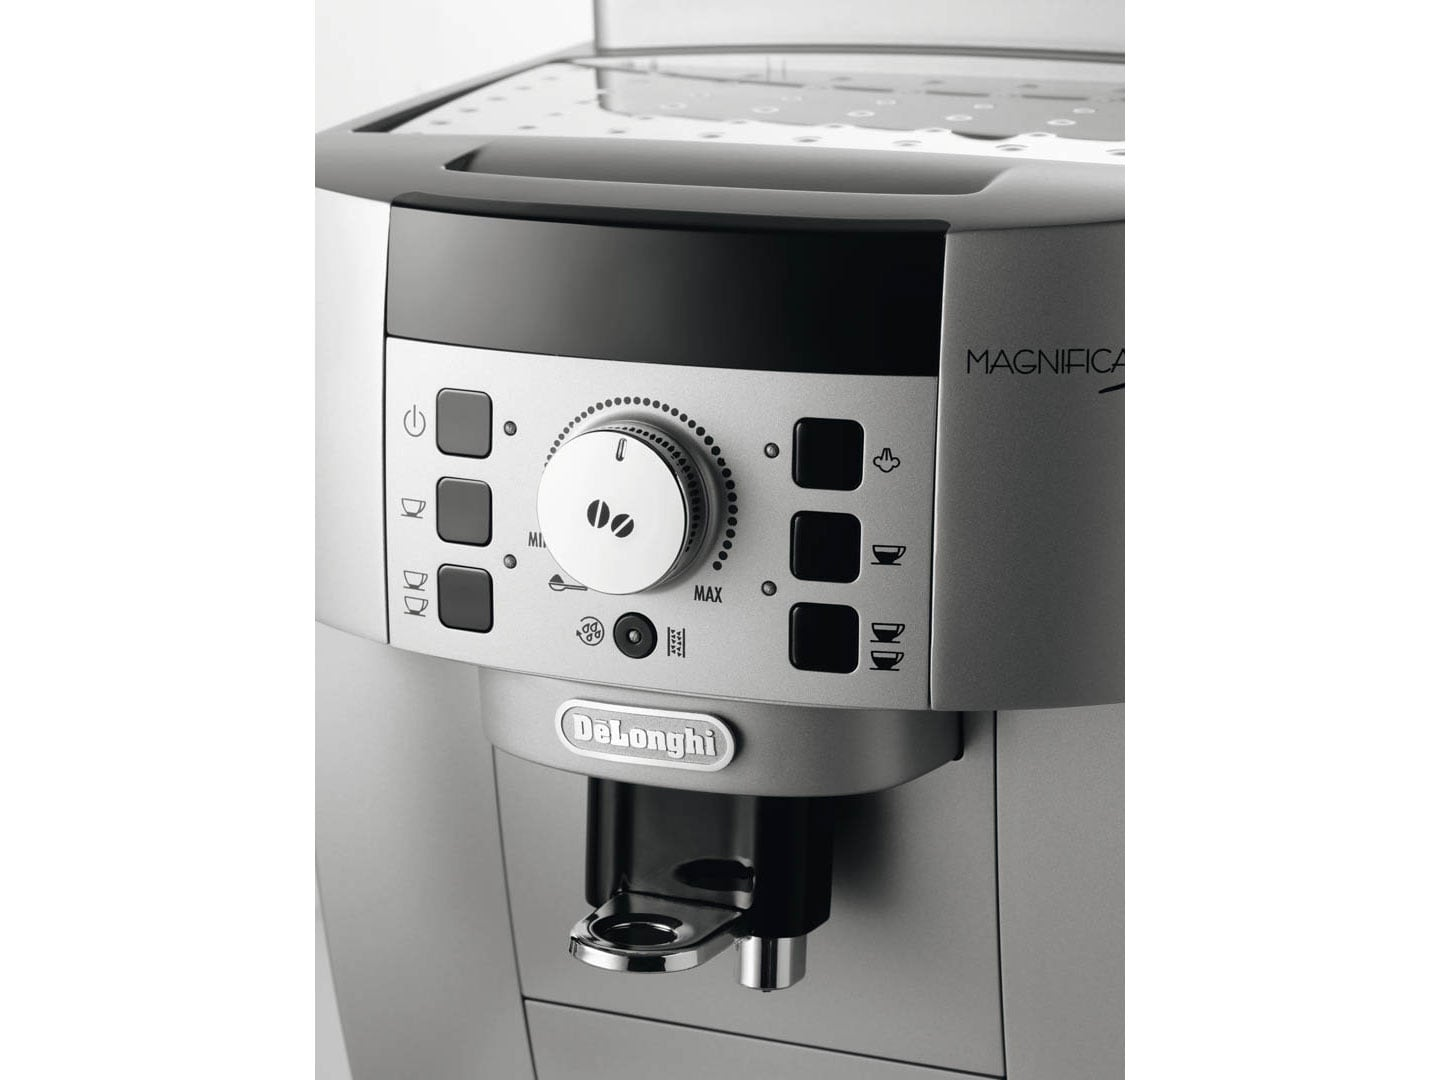 Magnifica S ECAM22110SB automatic coffee machine by delonghi australia